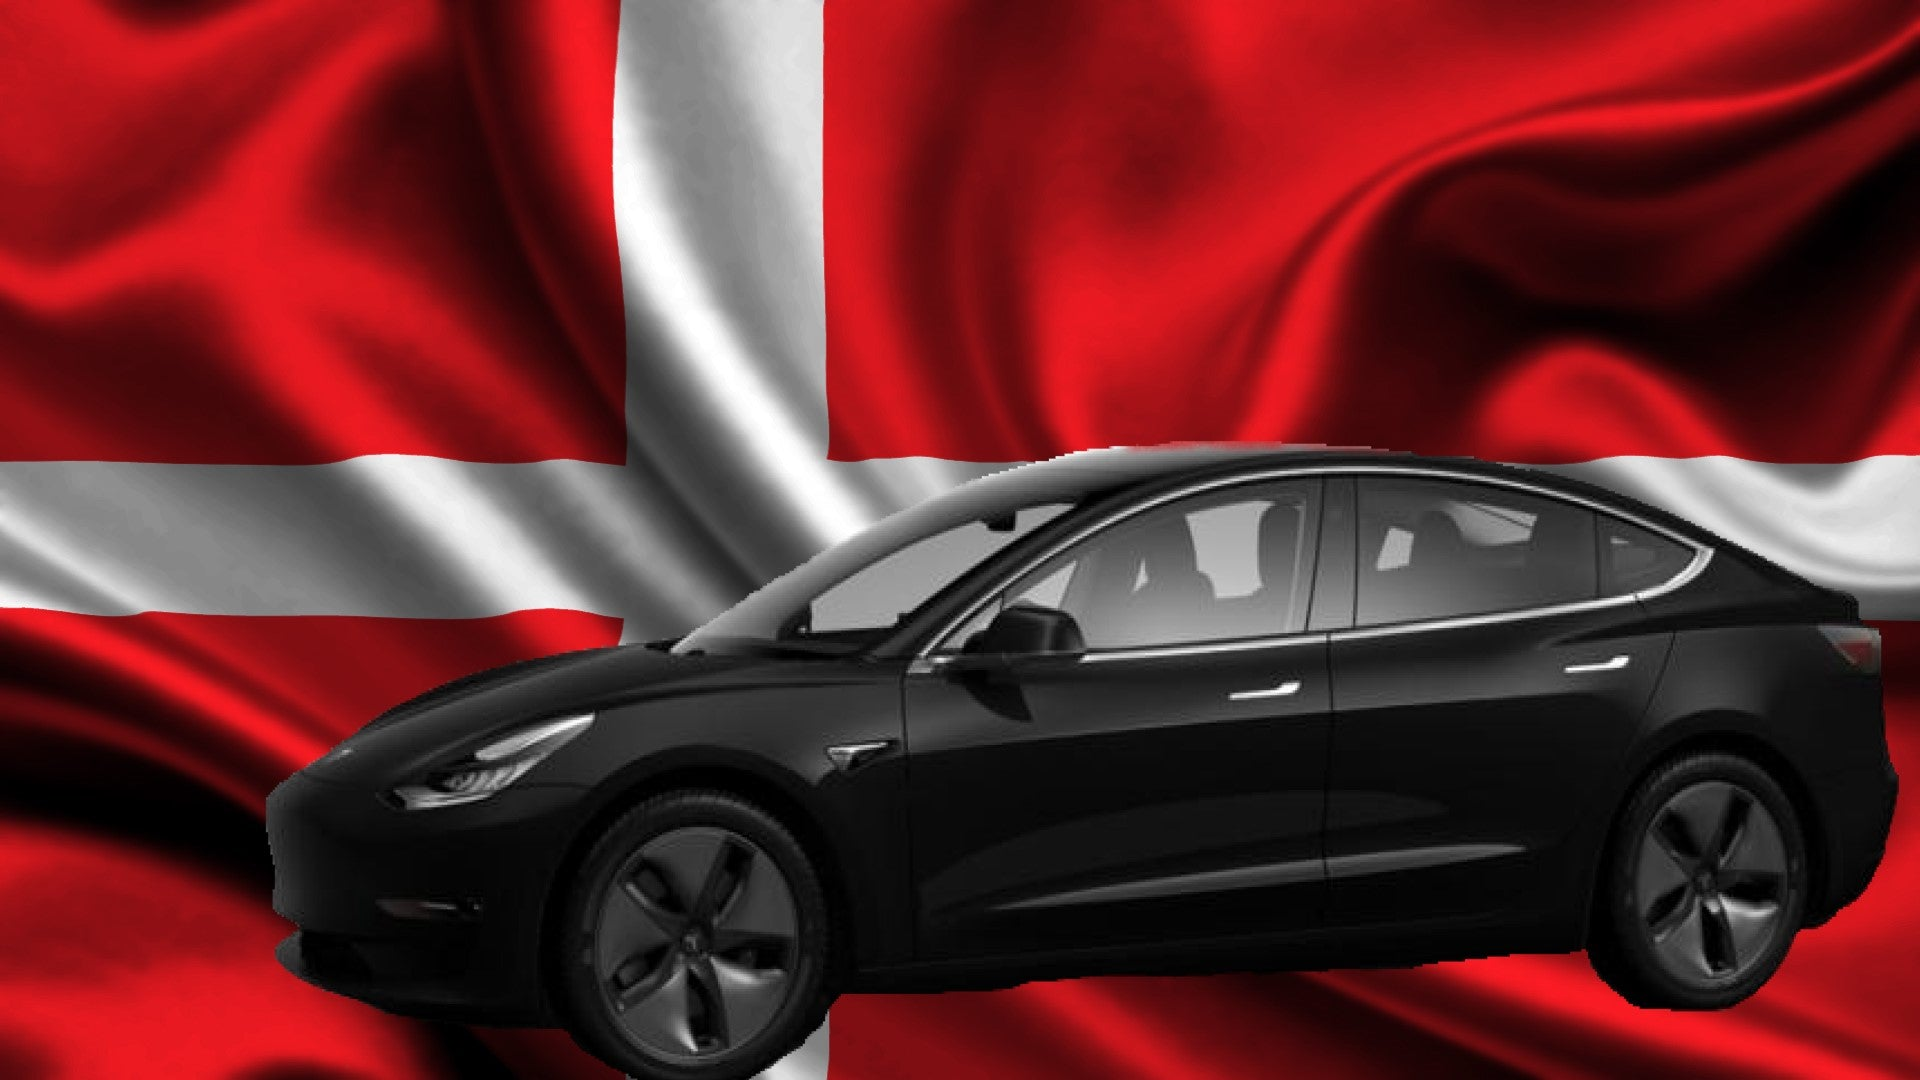 Tesla Model 3 wins the title Car of the Year 2020 in Denmark